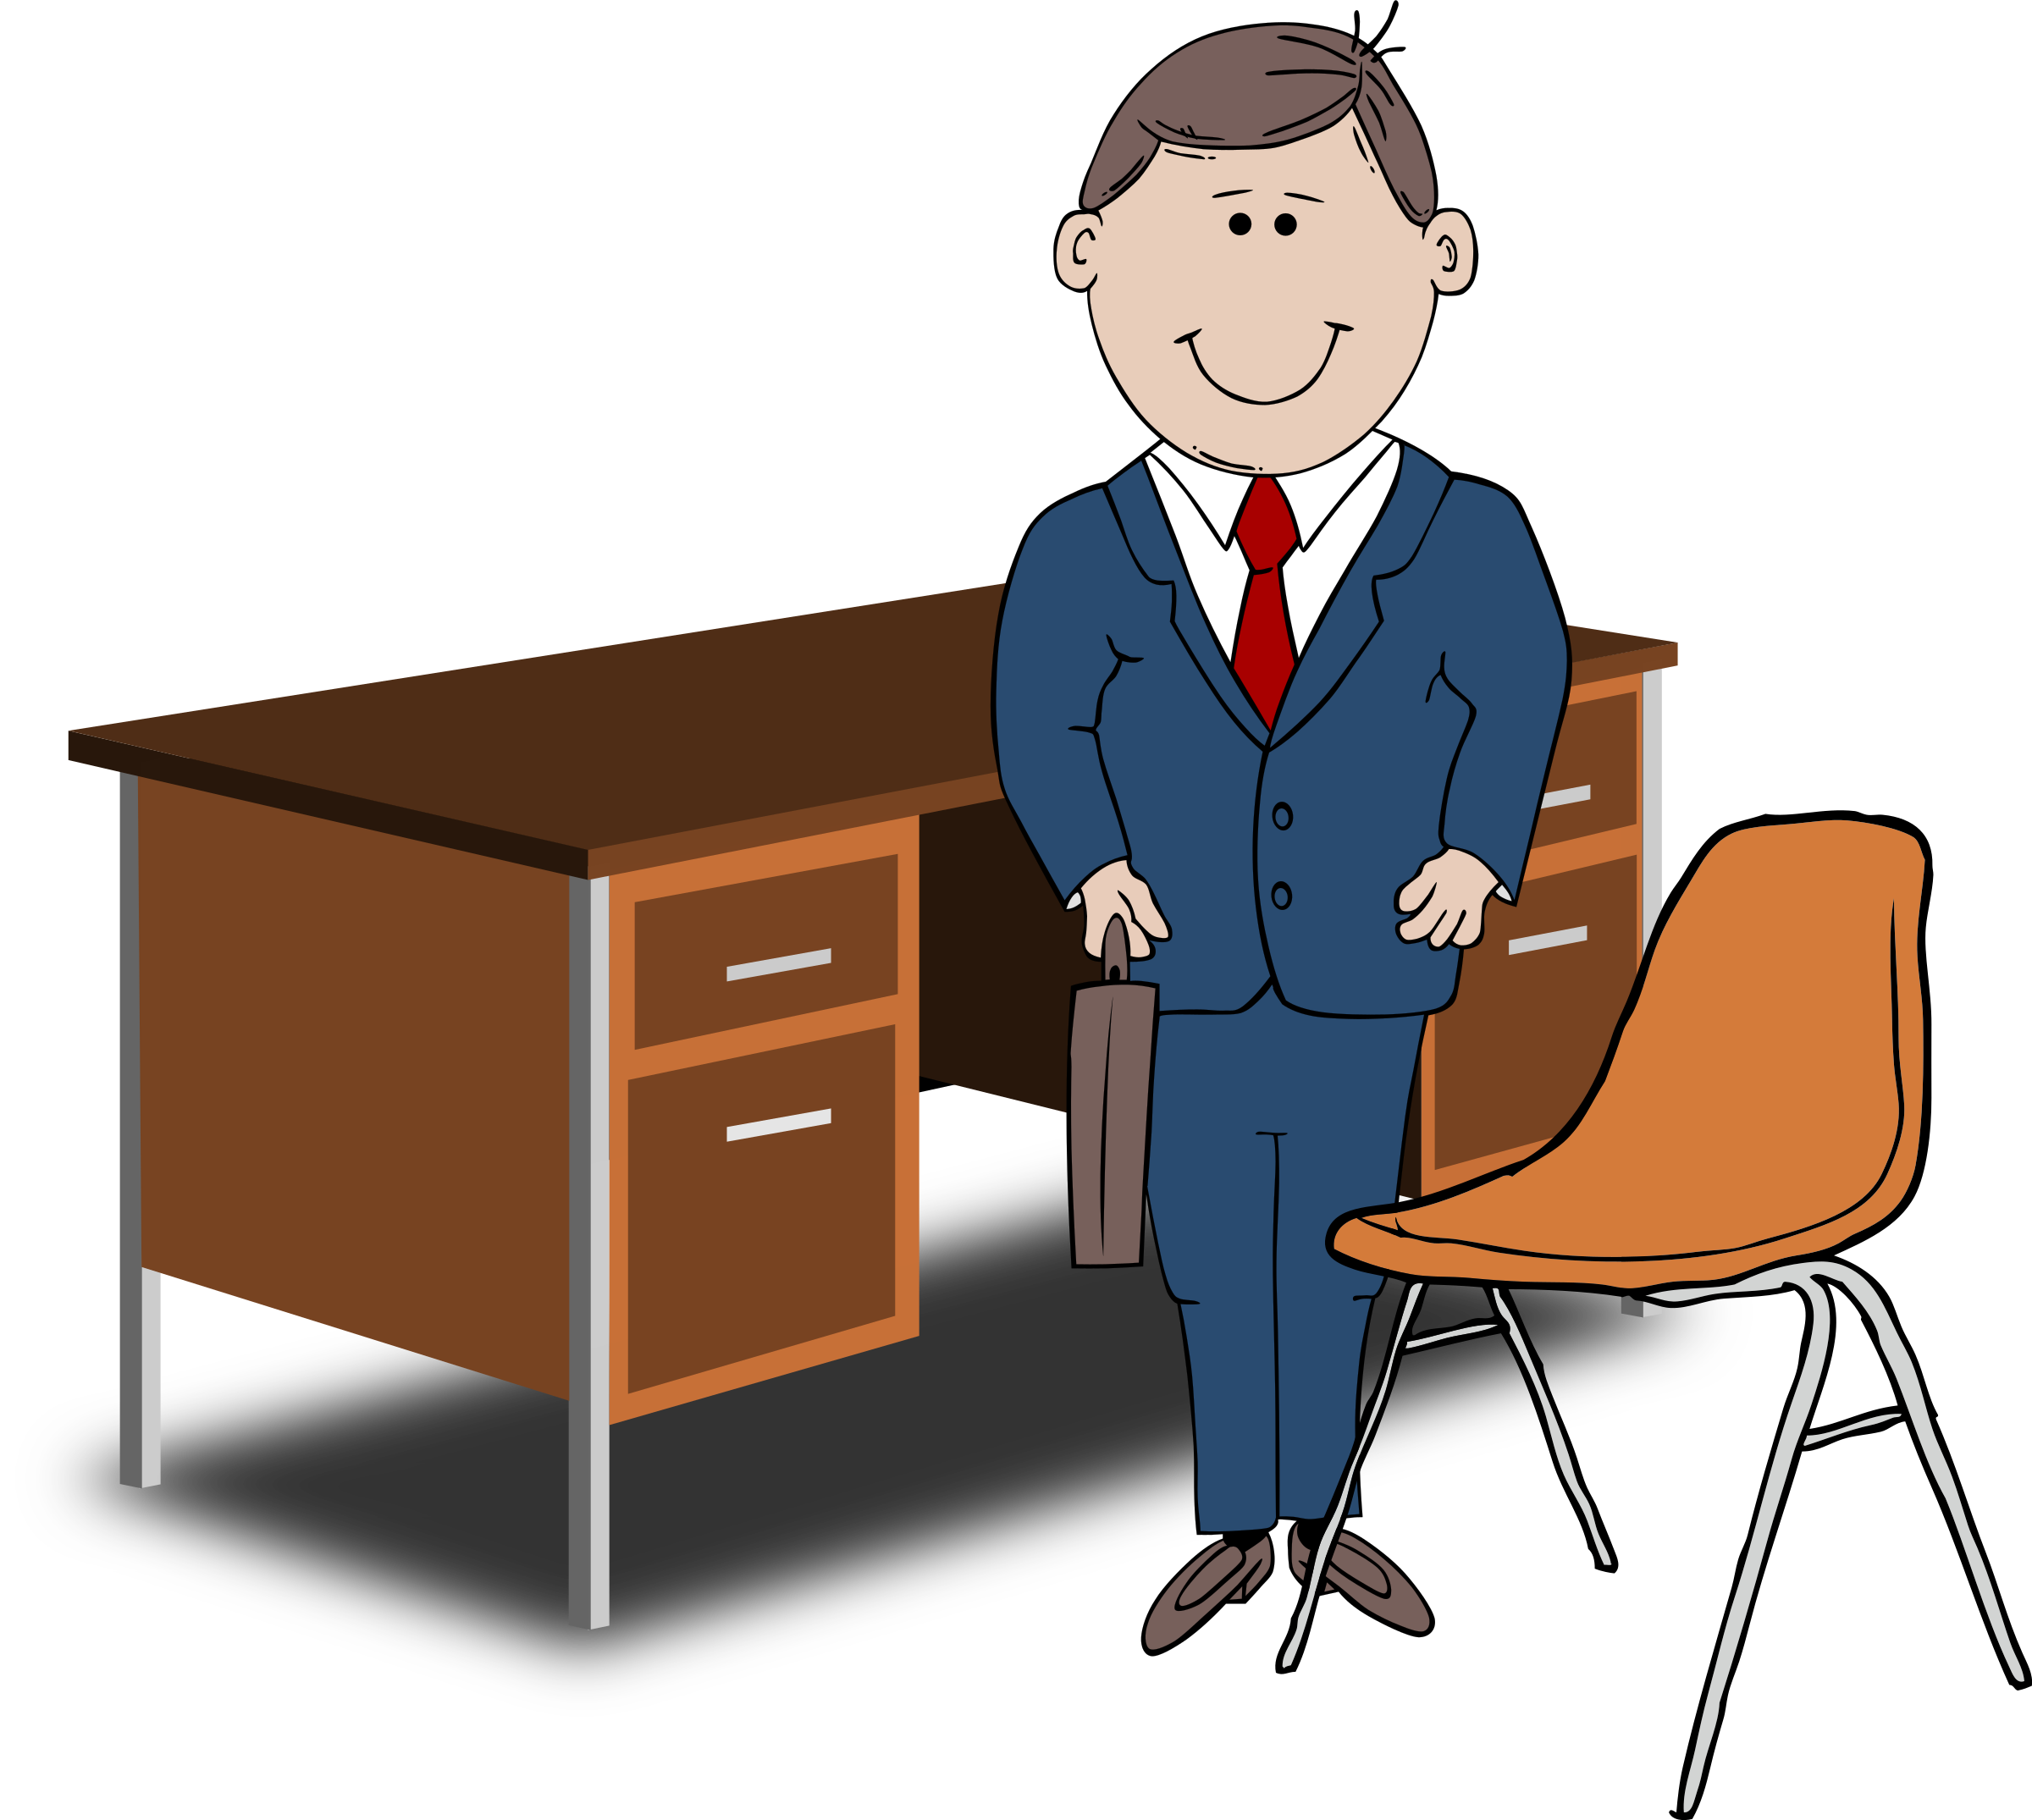 Furniture clipart une. Teacher manager between chair